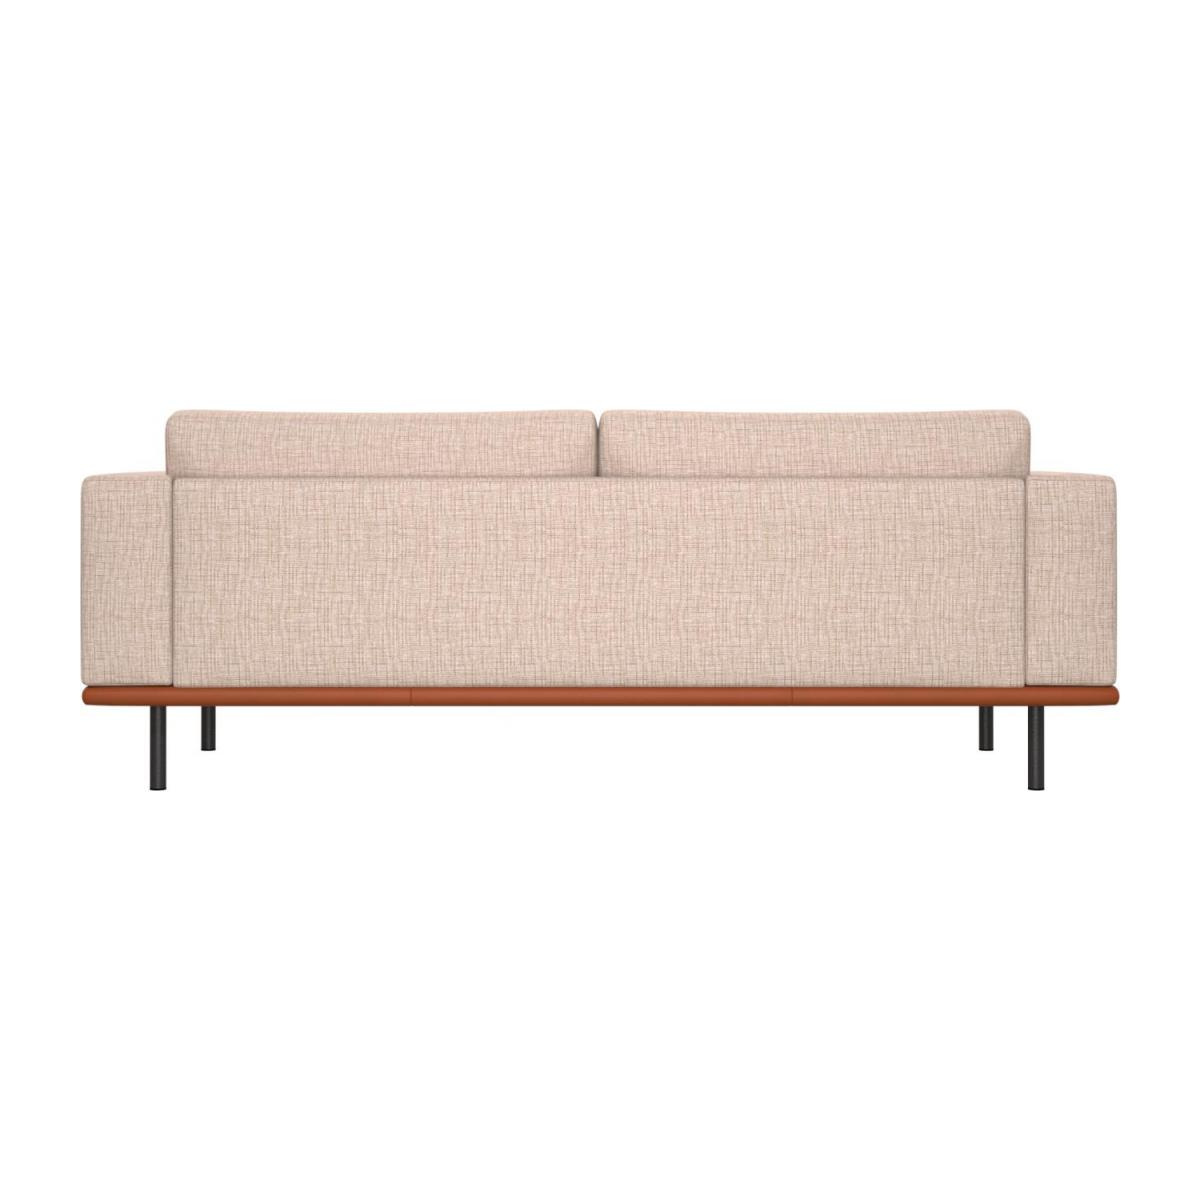 3 seater sofa in Ancio fabric, nature with base in brown leather n°3